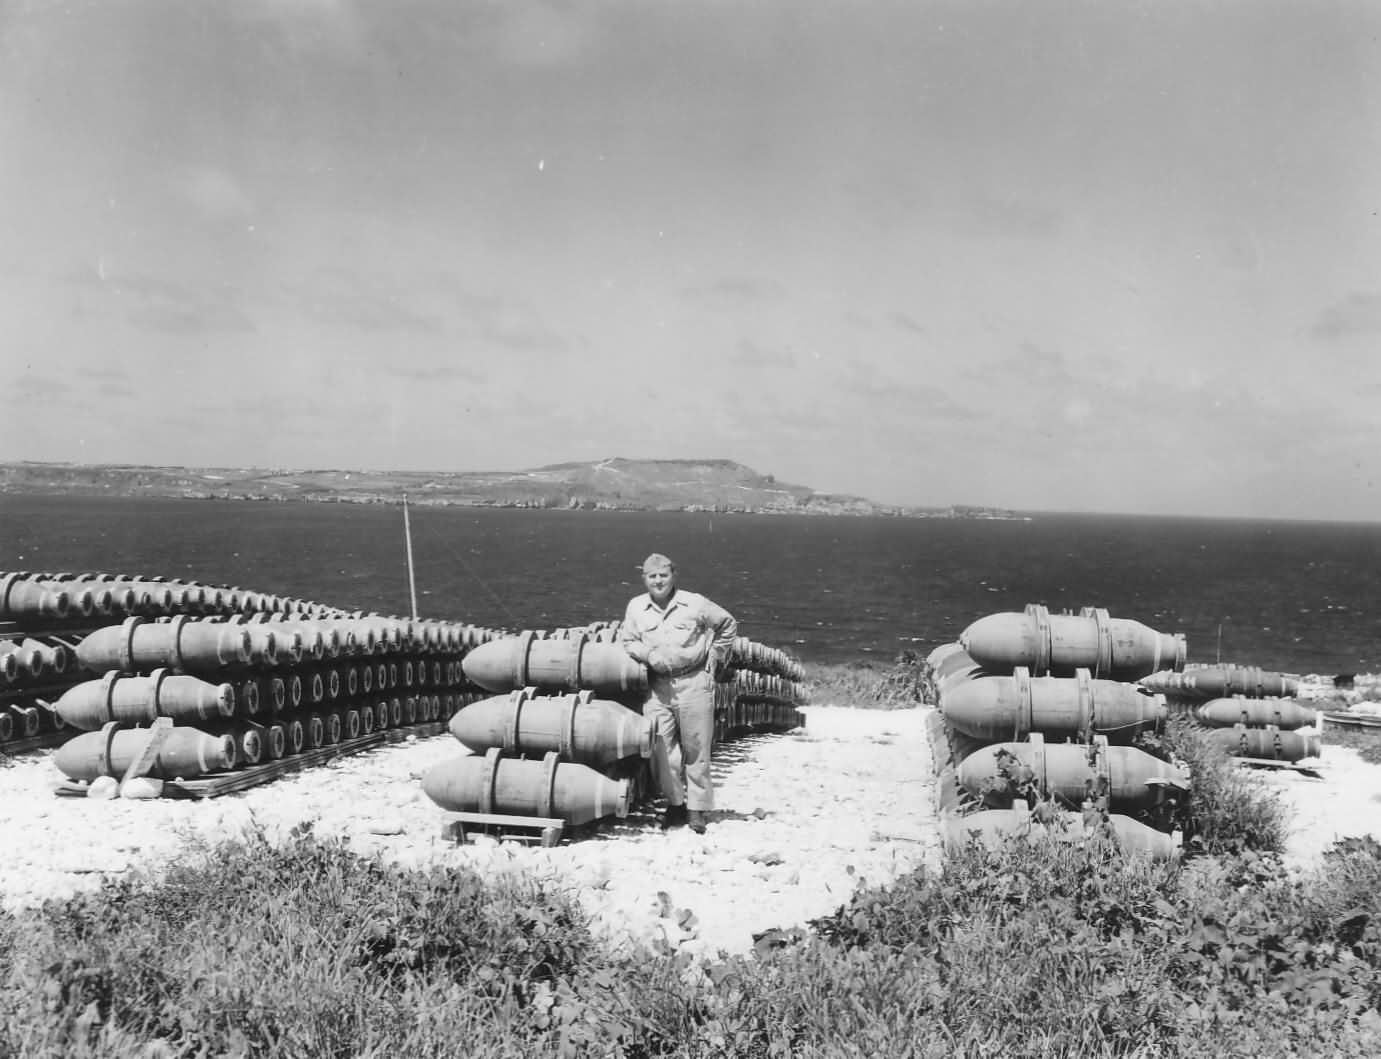 BOMBS STACKED for B-29 bombers